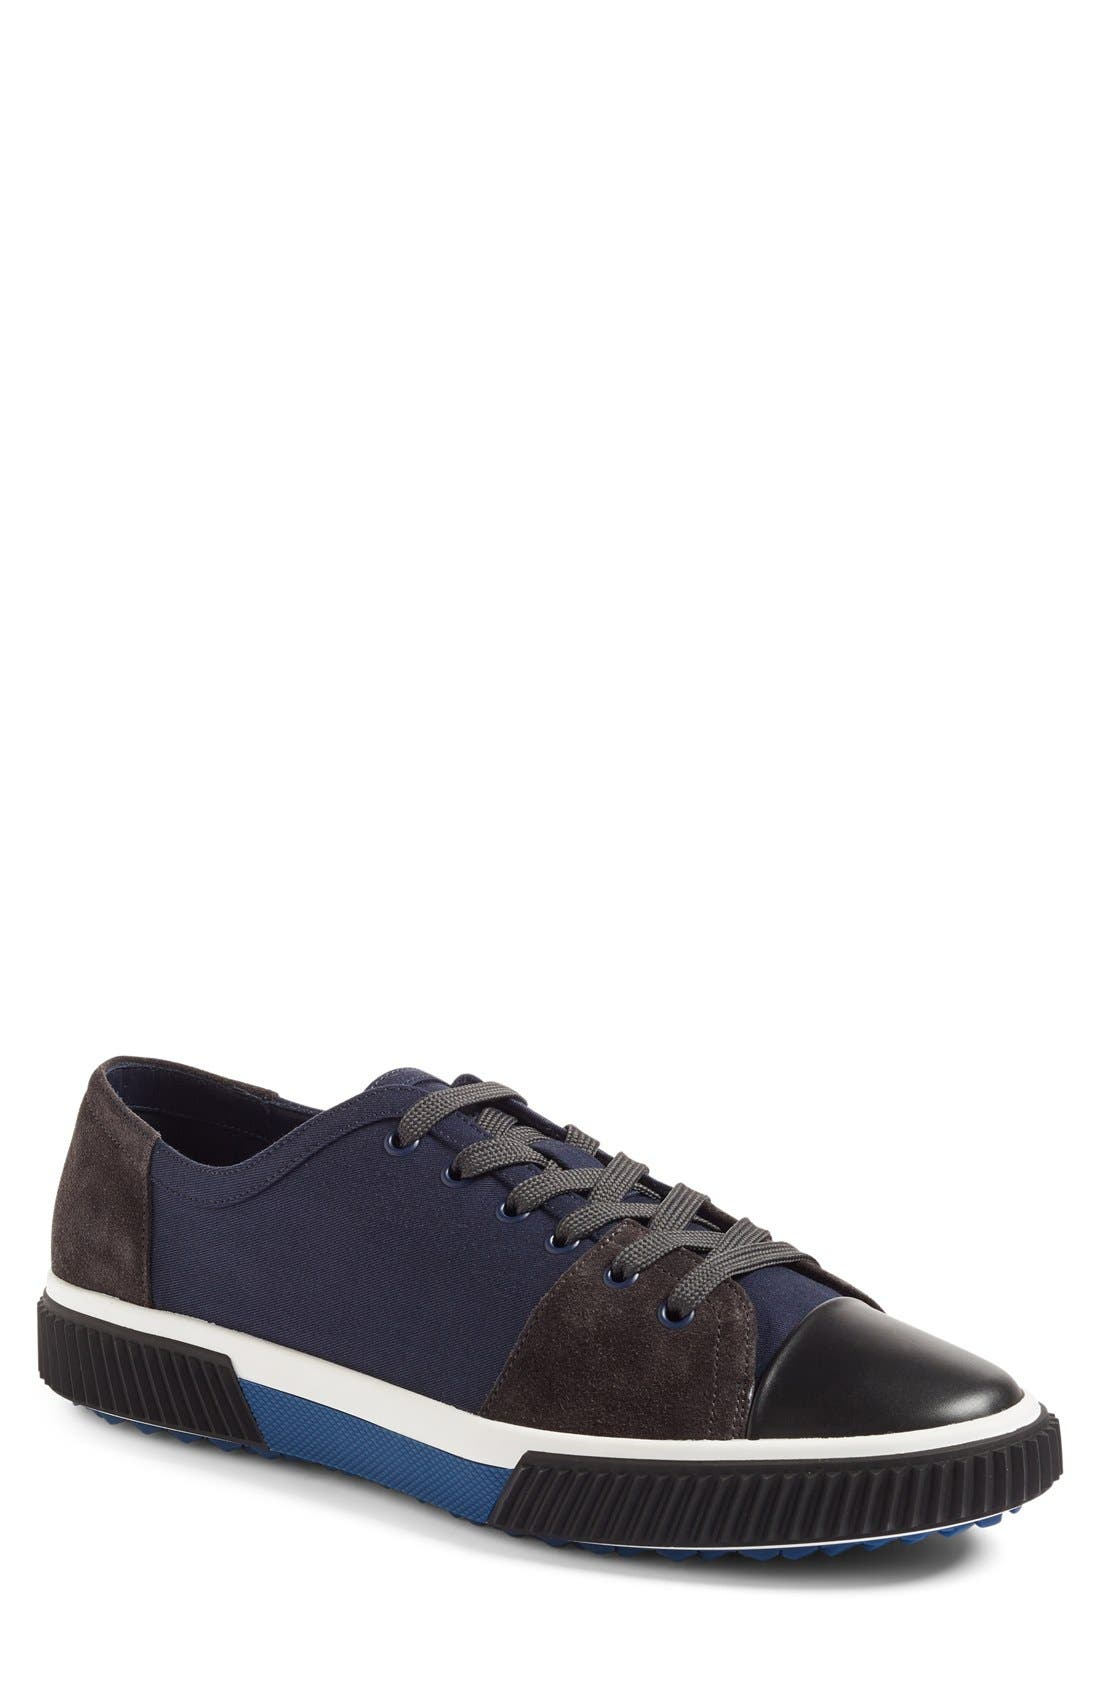 Linea Rossa Sneaker,                             Main thumbnail 1, color,                             Blue Fabric